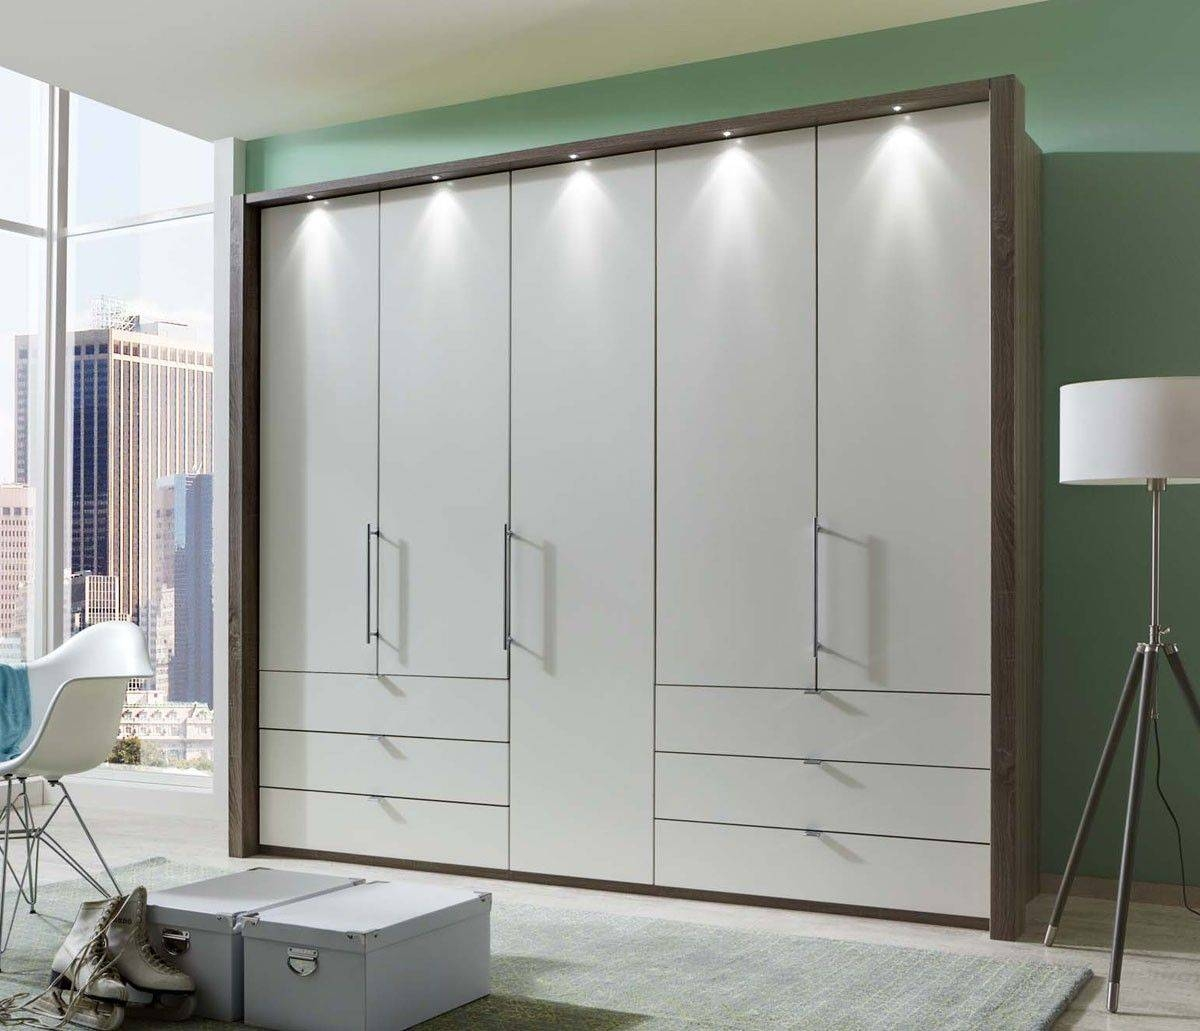 Wiemann Loft 5 Door Wardrobe With 6 Drawers With Bi Fold Panorama Intended For 5 Door Wardrobes (View 14 of 15)